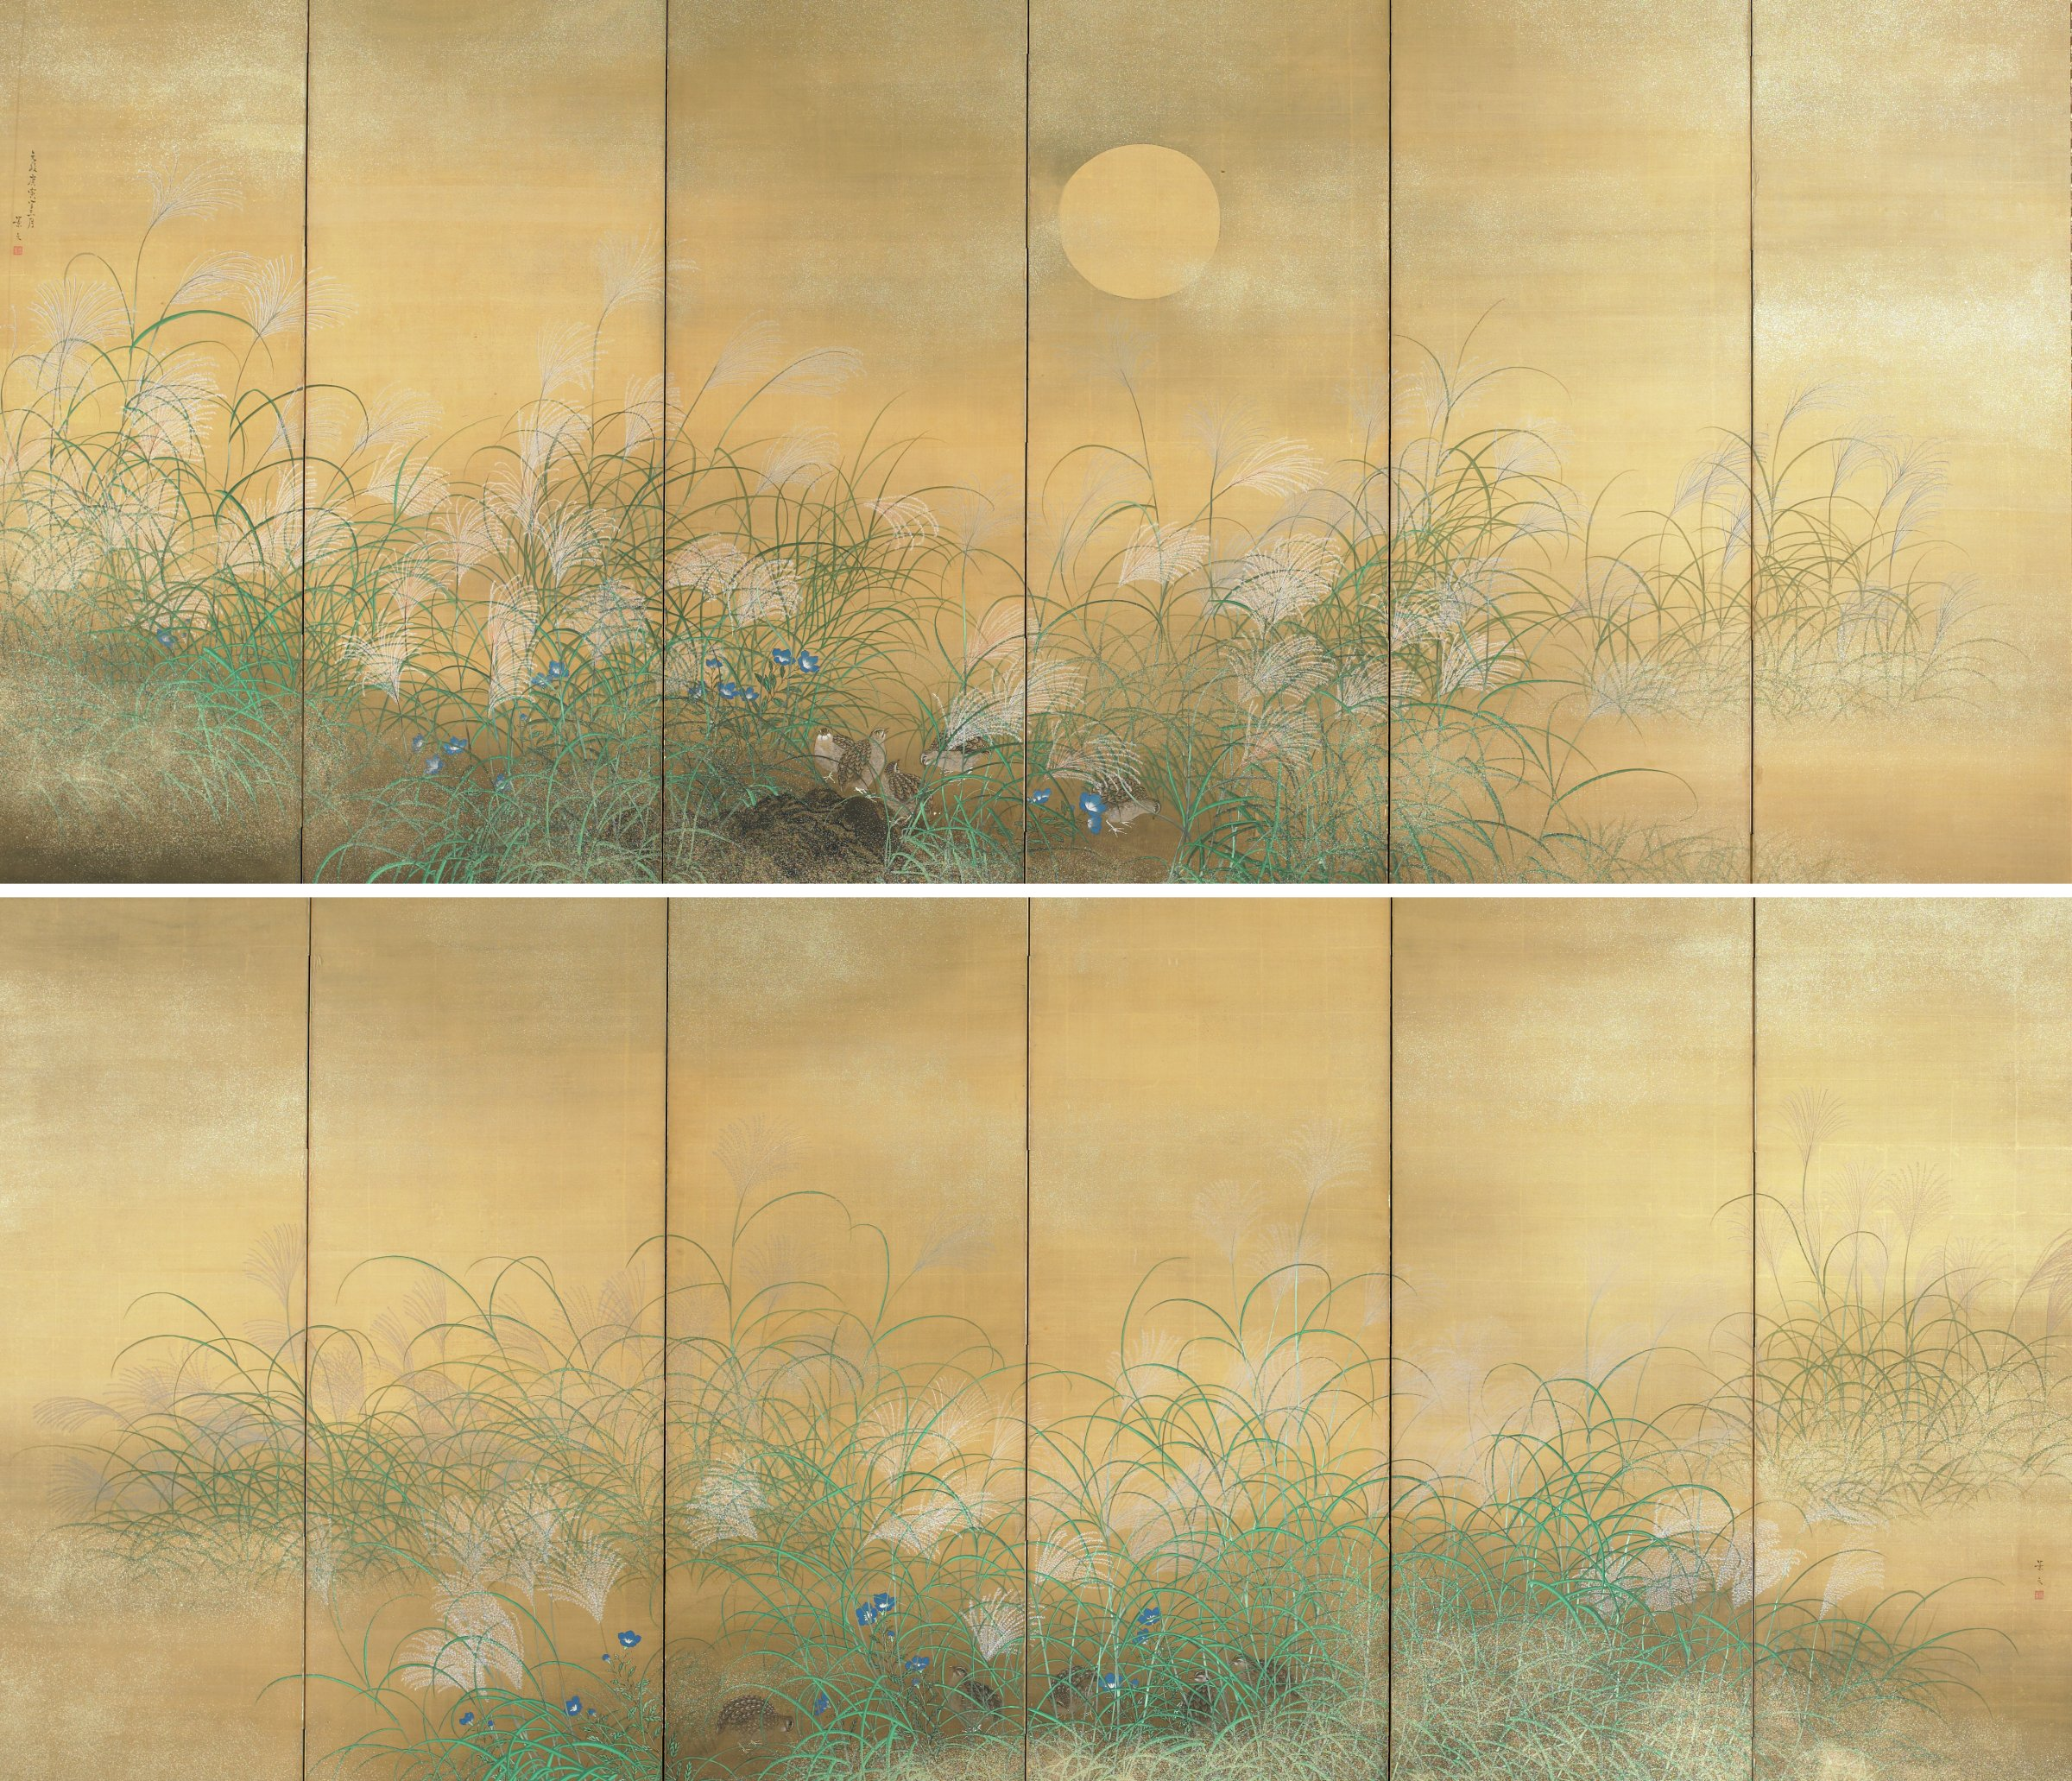 Pair of six-panel folding screens showing birds feeding at early dawn. Style of calligraphy indicates this was an imperial commission.